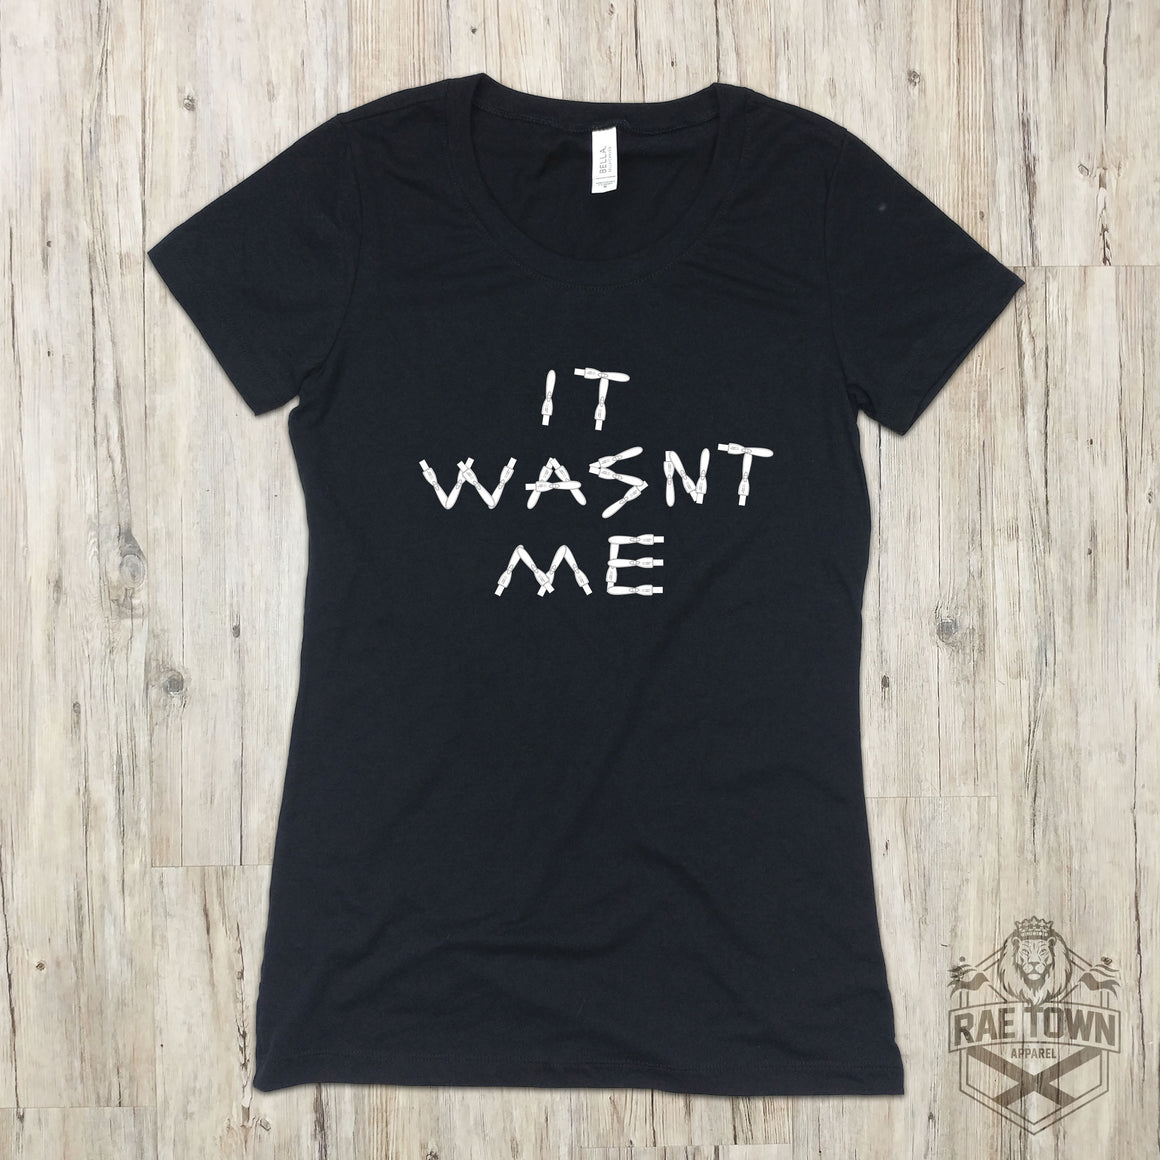 Wasn't Me Pregnancy Test | Women's Garments